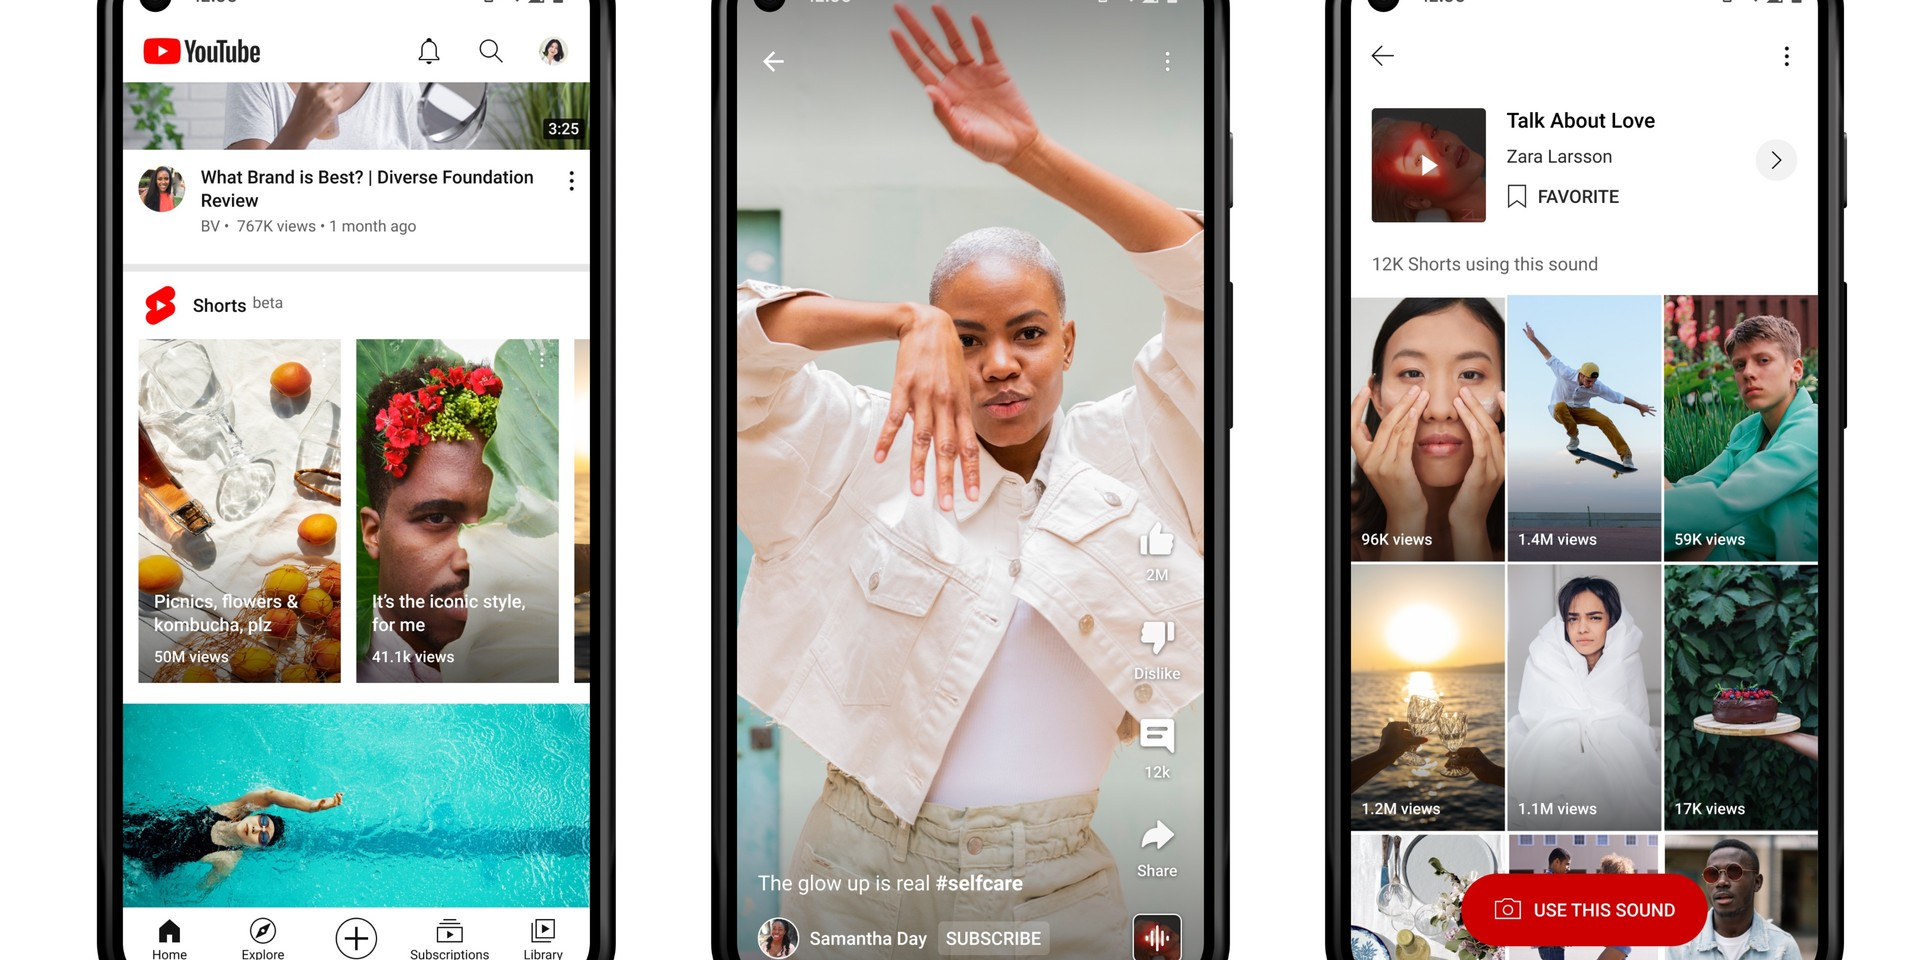 YouTube launches short-video service 'Shorts' in 100 countries including the Philippines, Singapore, Indonesia, and more